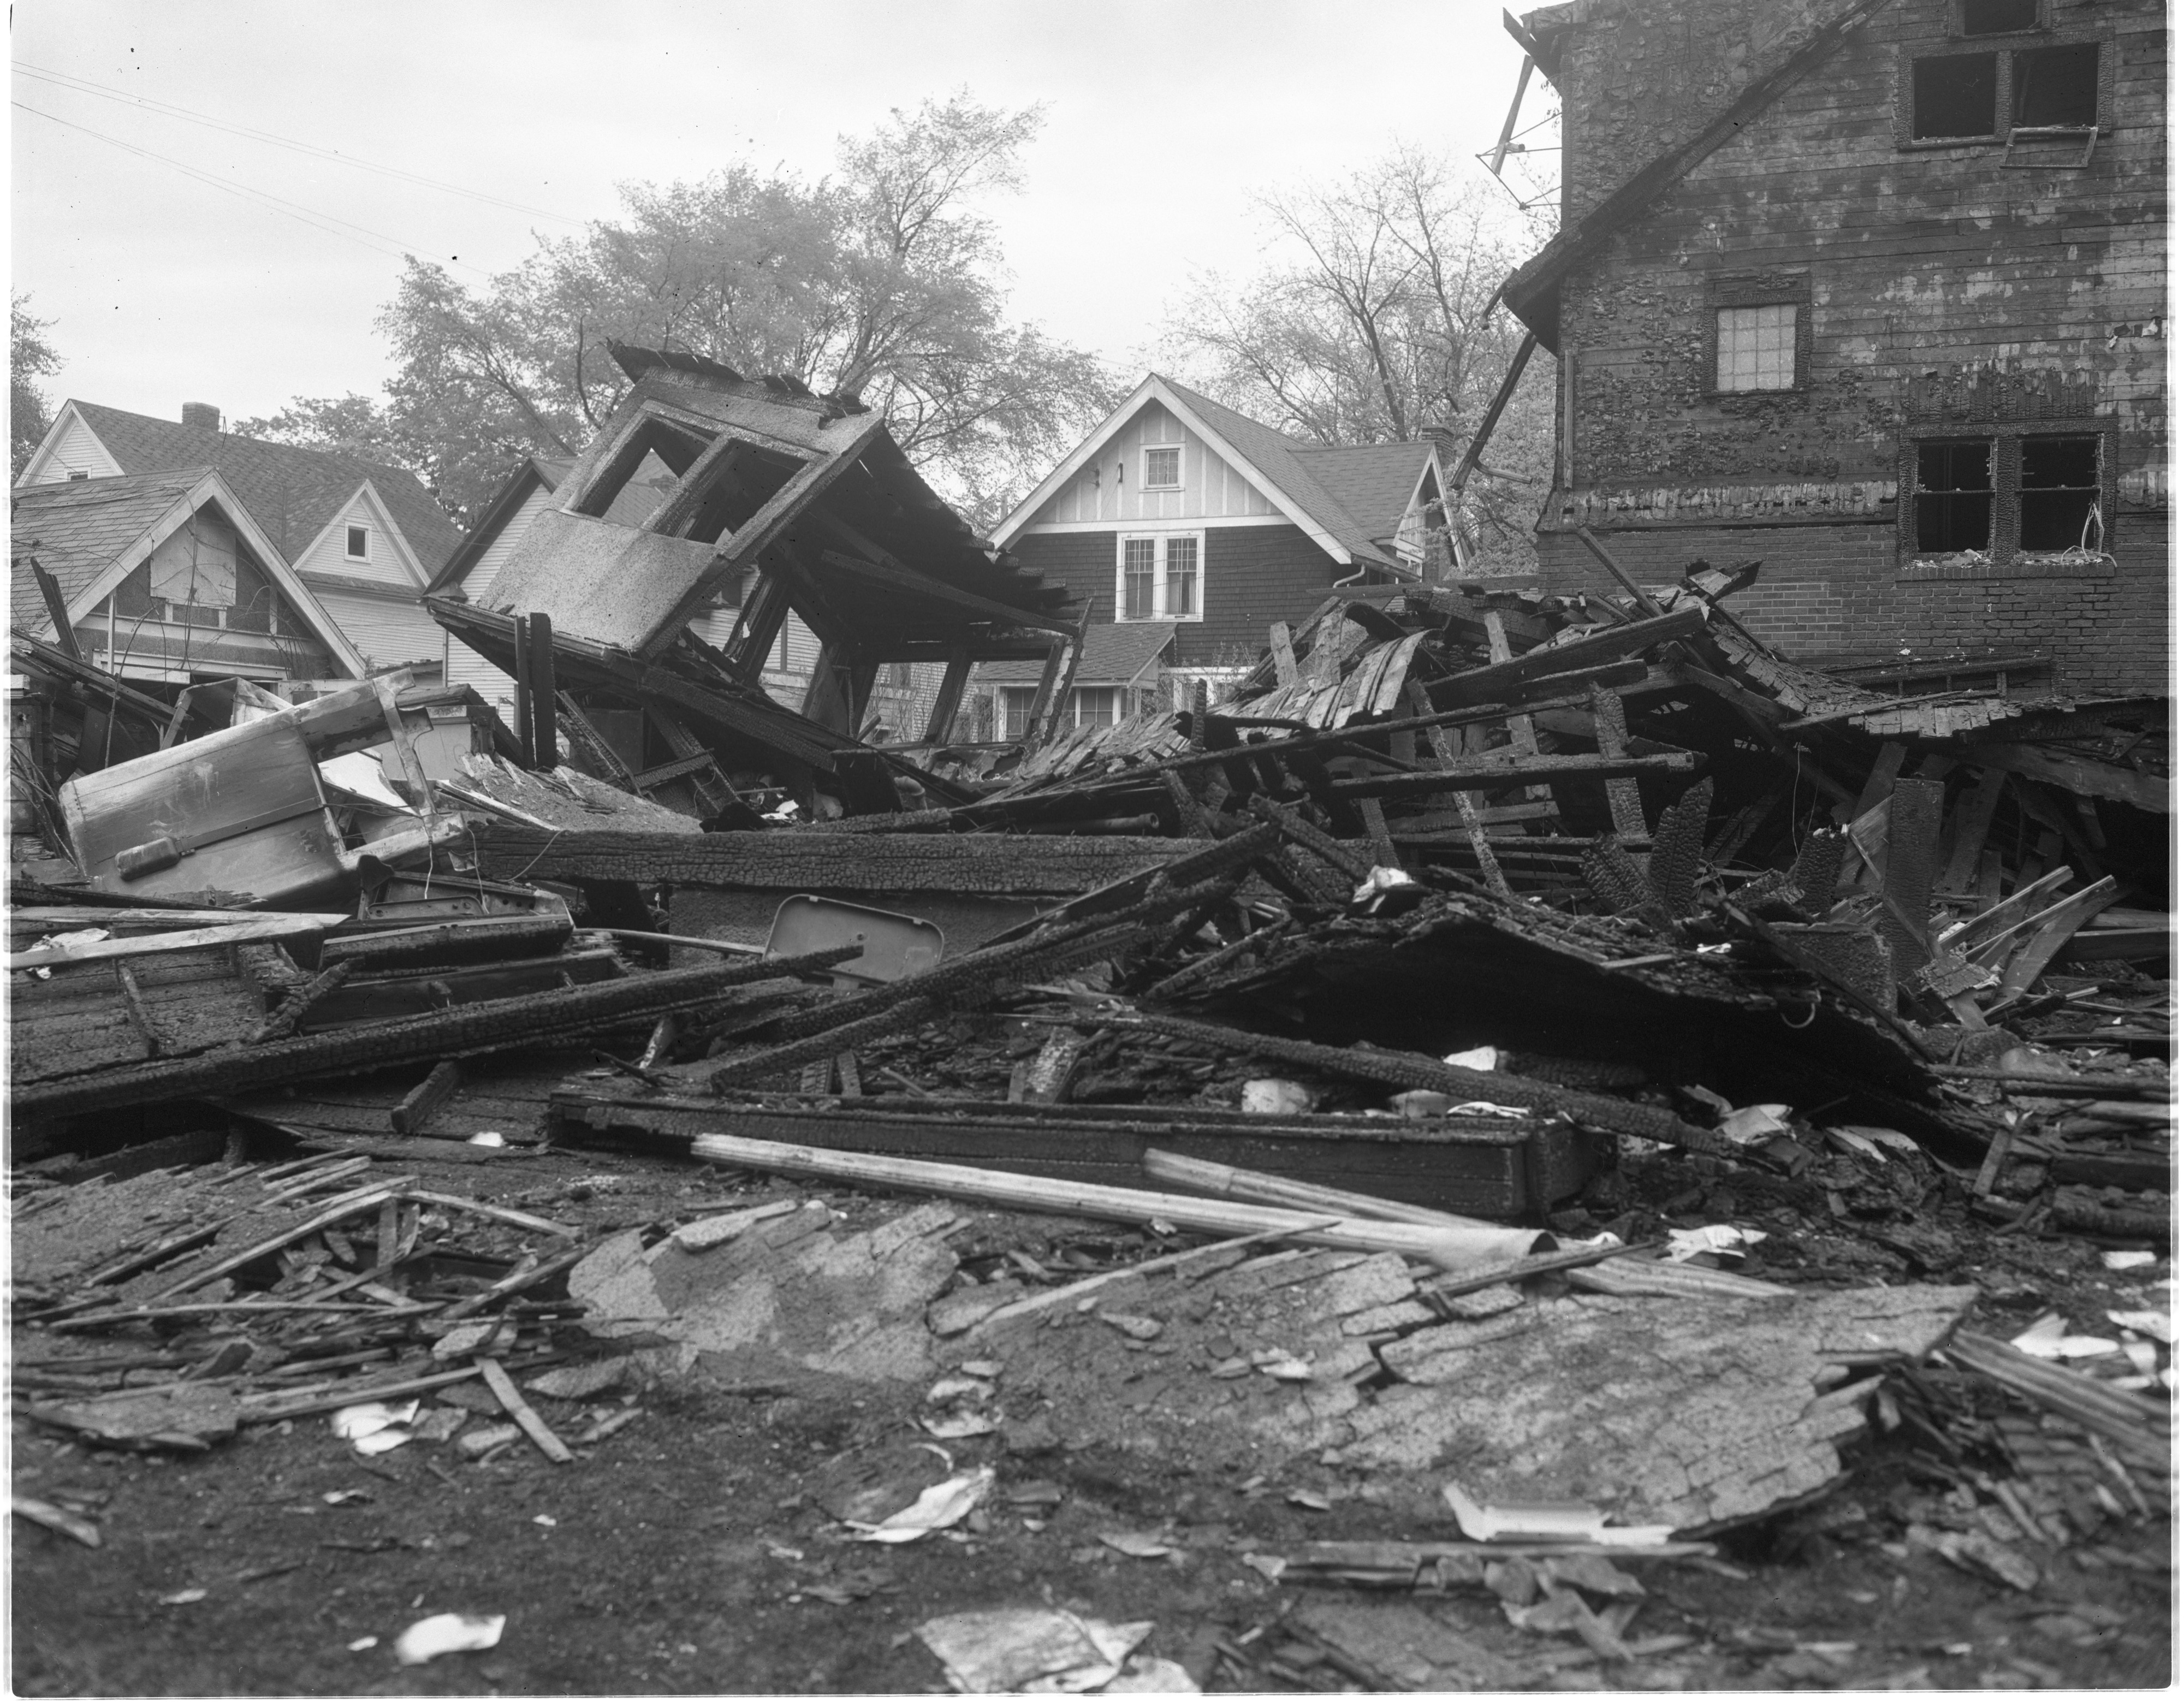 Remains Of The Guthe Home At 845 Brookwood Place After A Gas Explosion During The Windstorm, May 1959 image